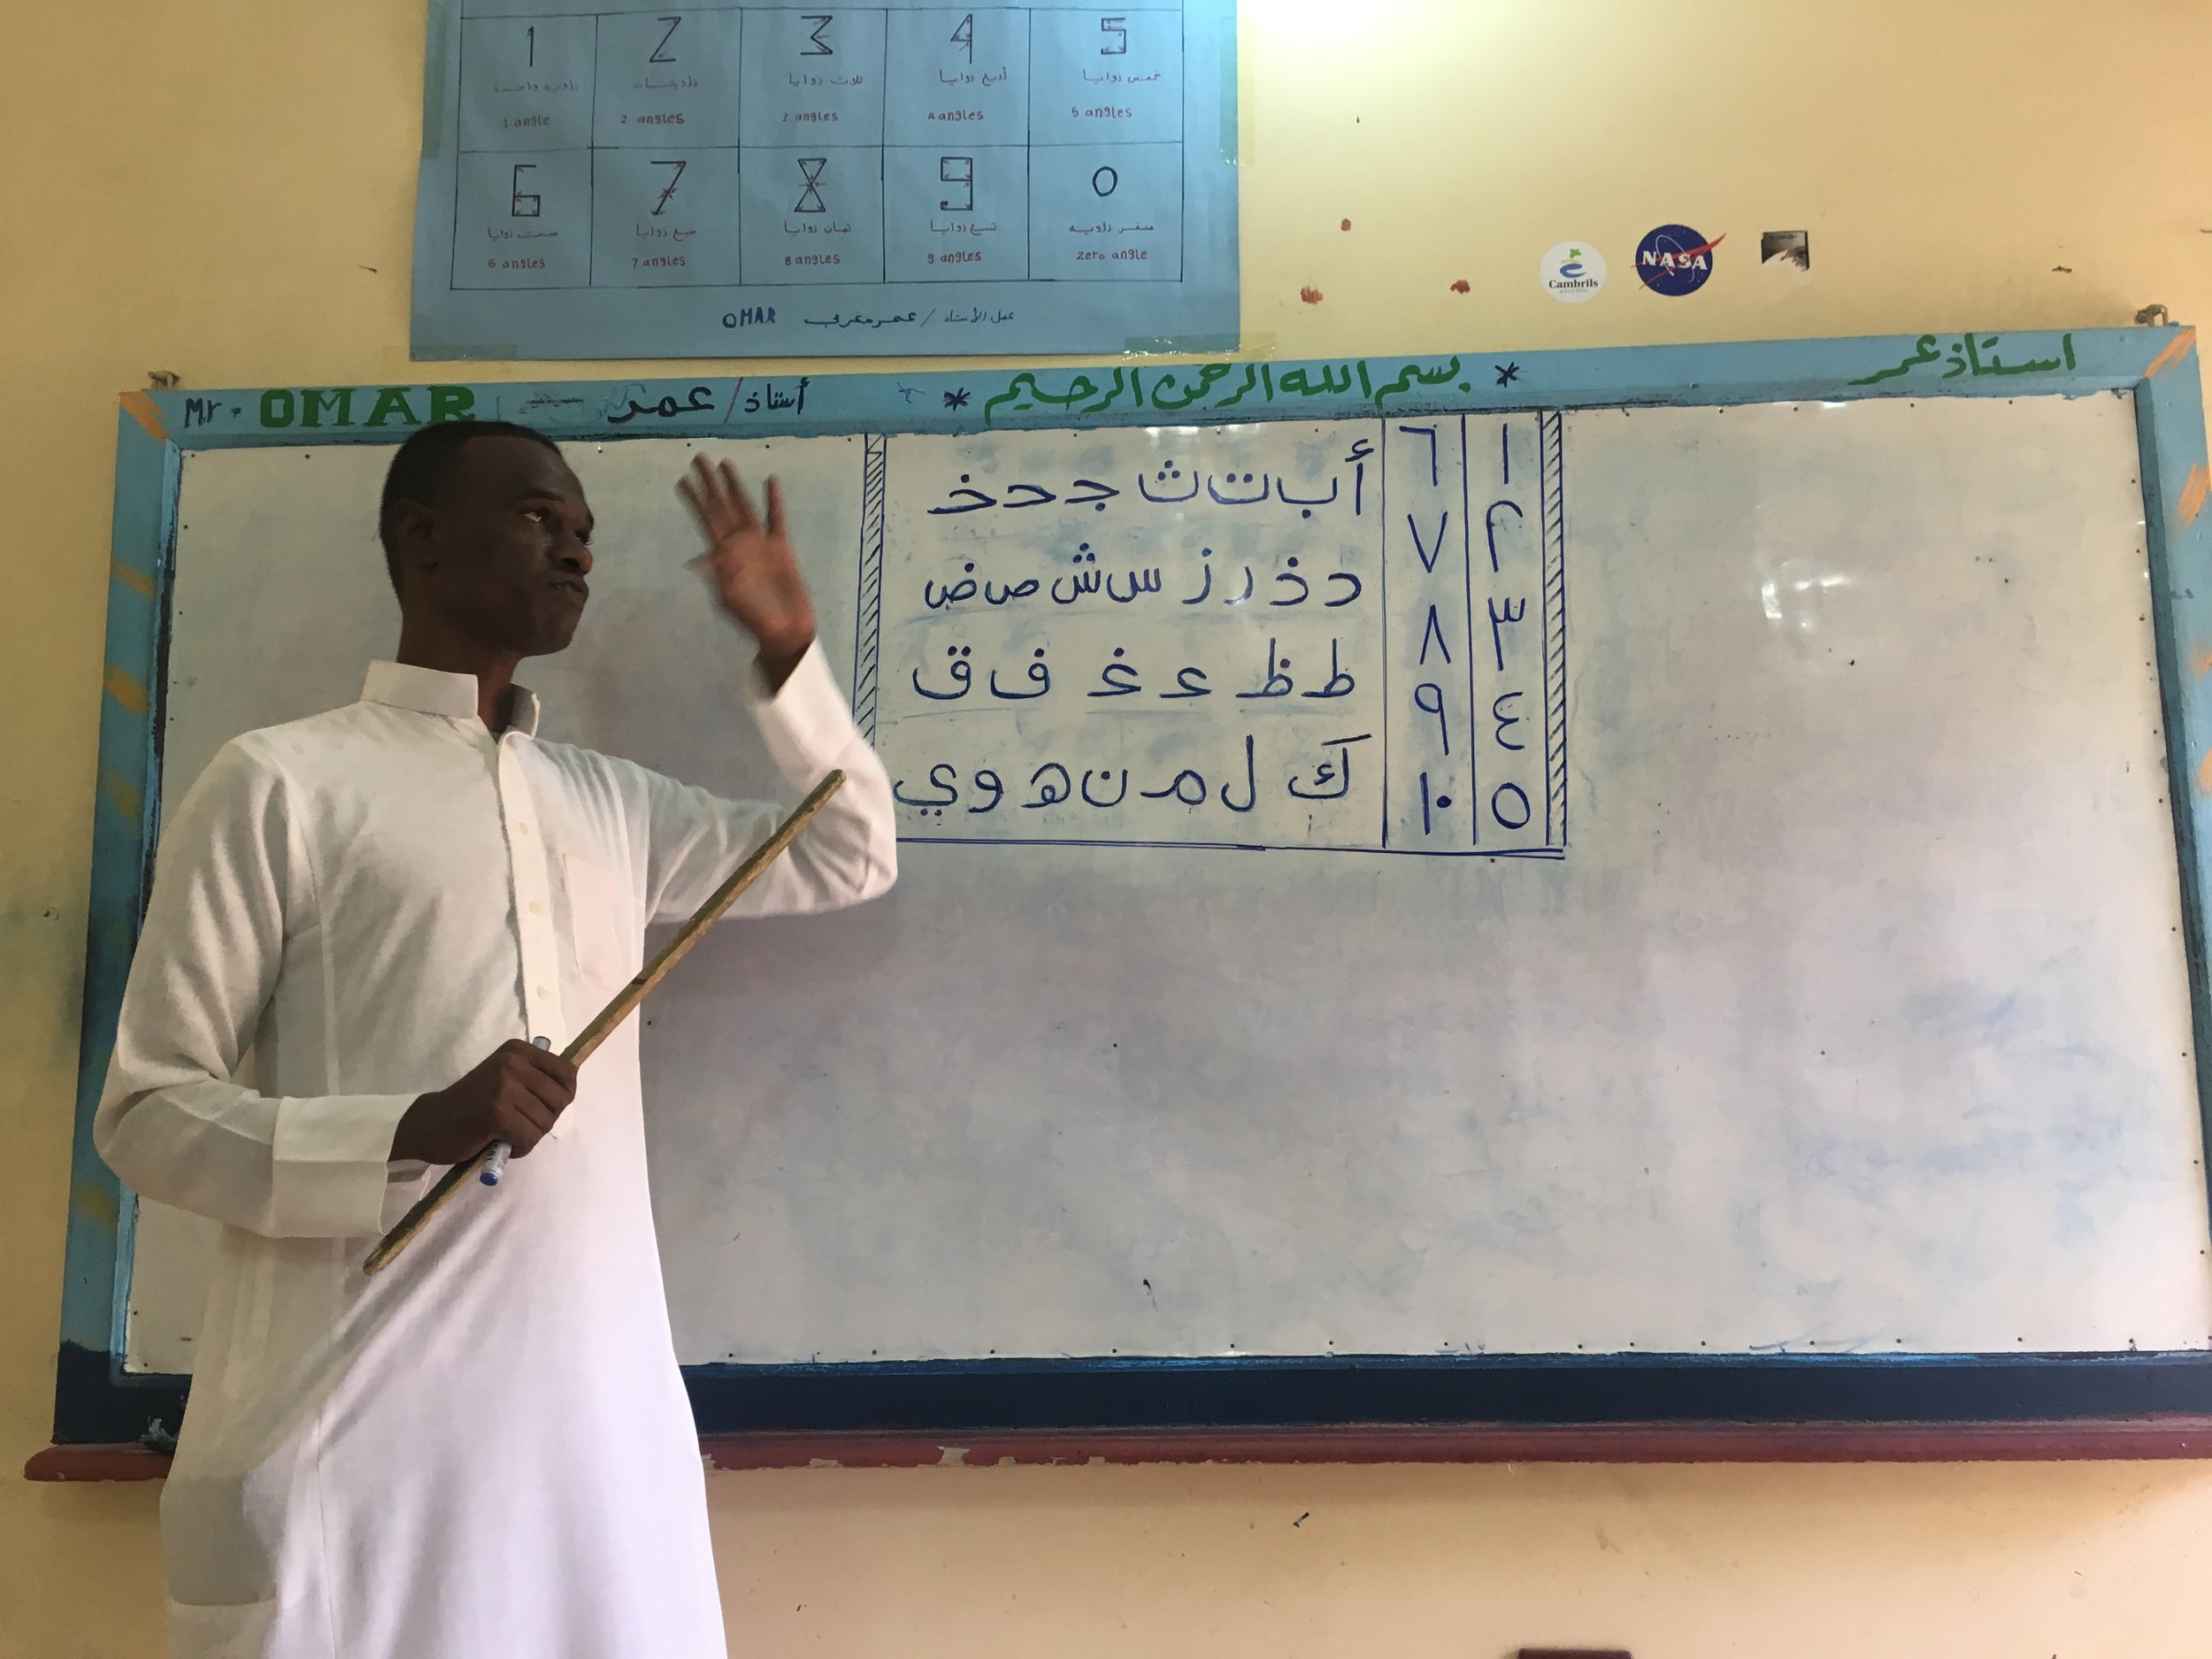 Mr. Omar taught us the Arabic alphabet and how to count in Nubian and Arabic.